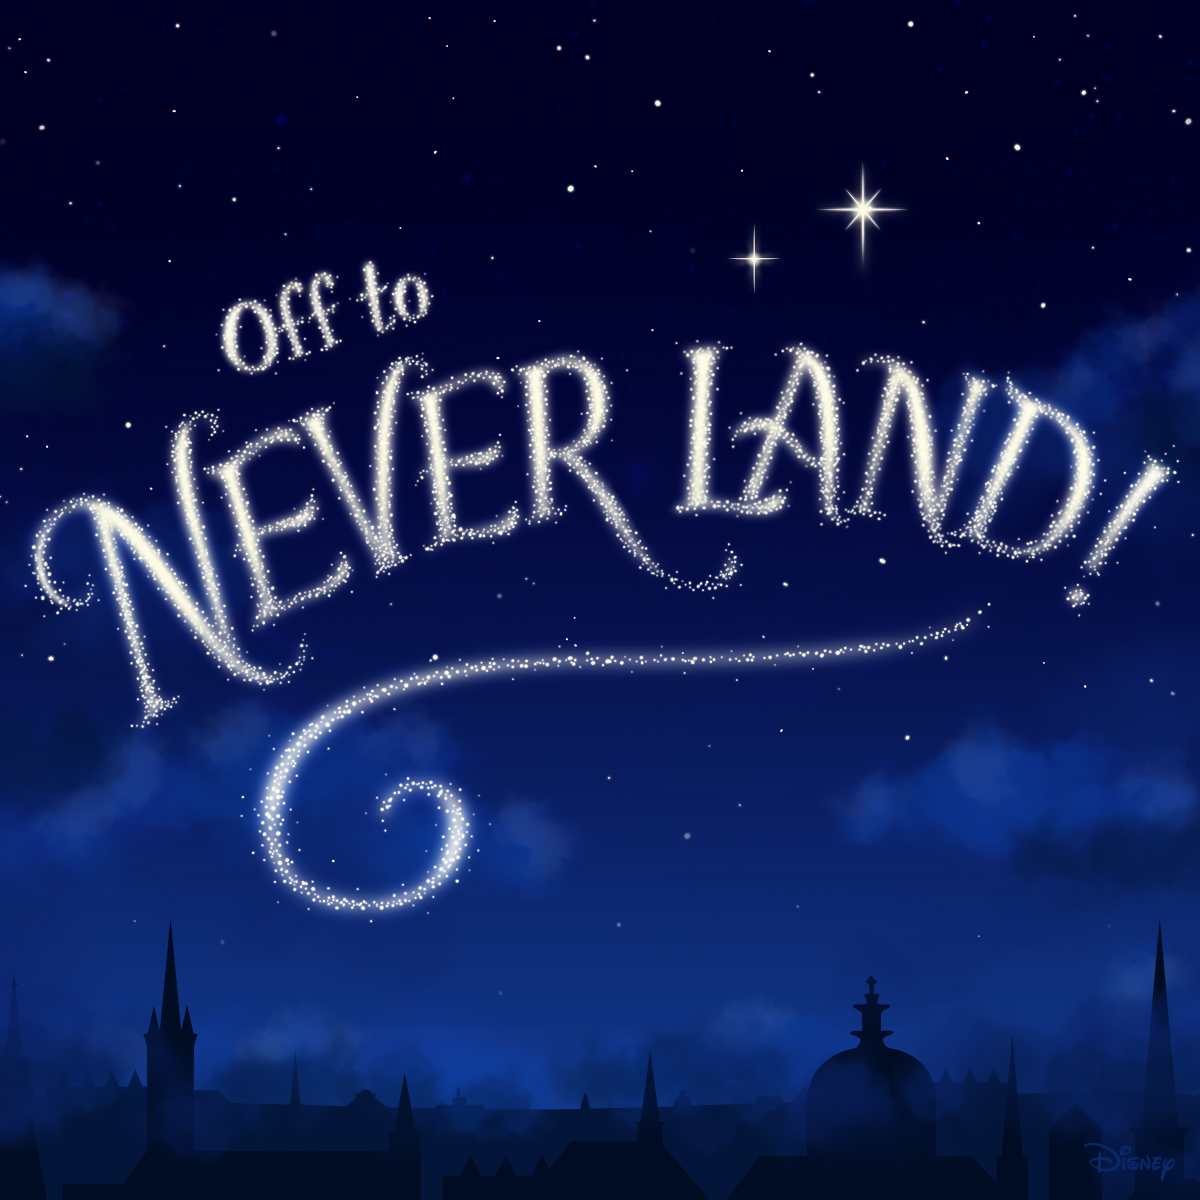 di_weekly_peterpan_never_land_quote